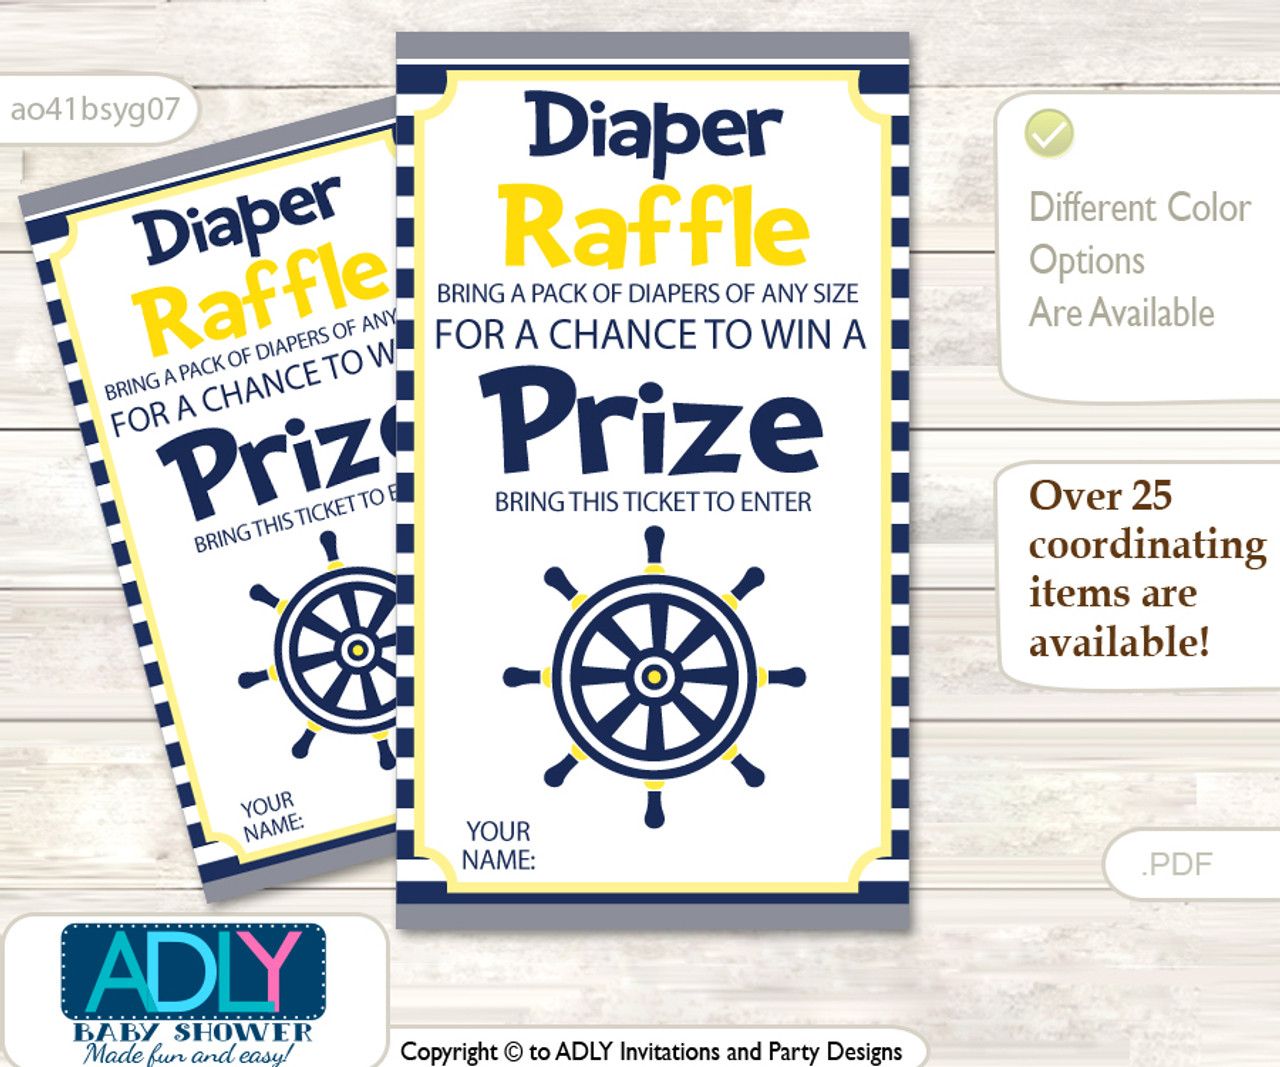 image regarding Tickets Printable titled Nautical Boy Diaper Raffle Printable Tickets for Kid Shower, Armed forces, Gray